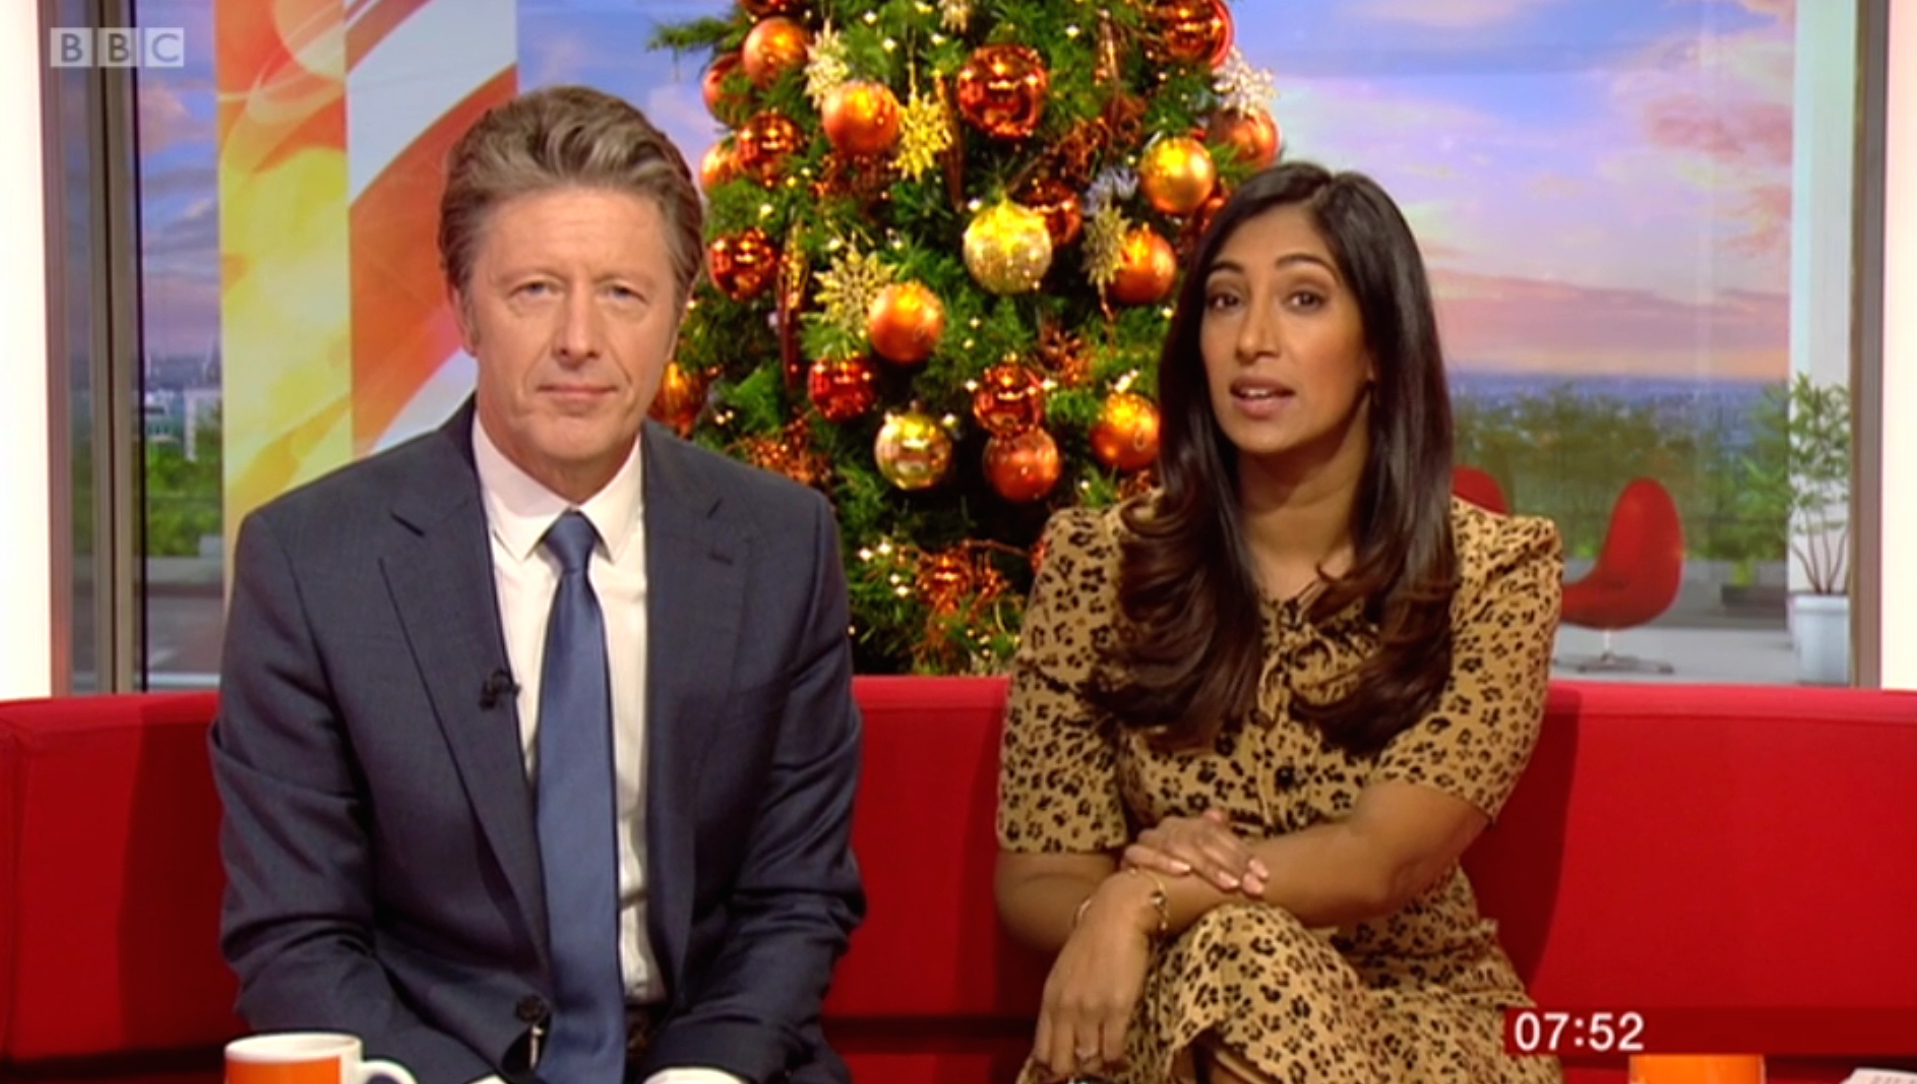 Above: BBC Breakfastanchor presenters Charlie Stayt andTinaDaheley.